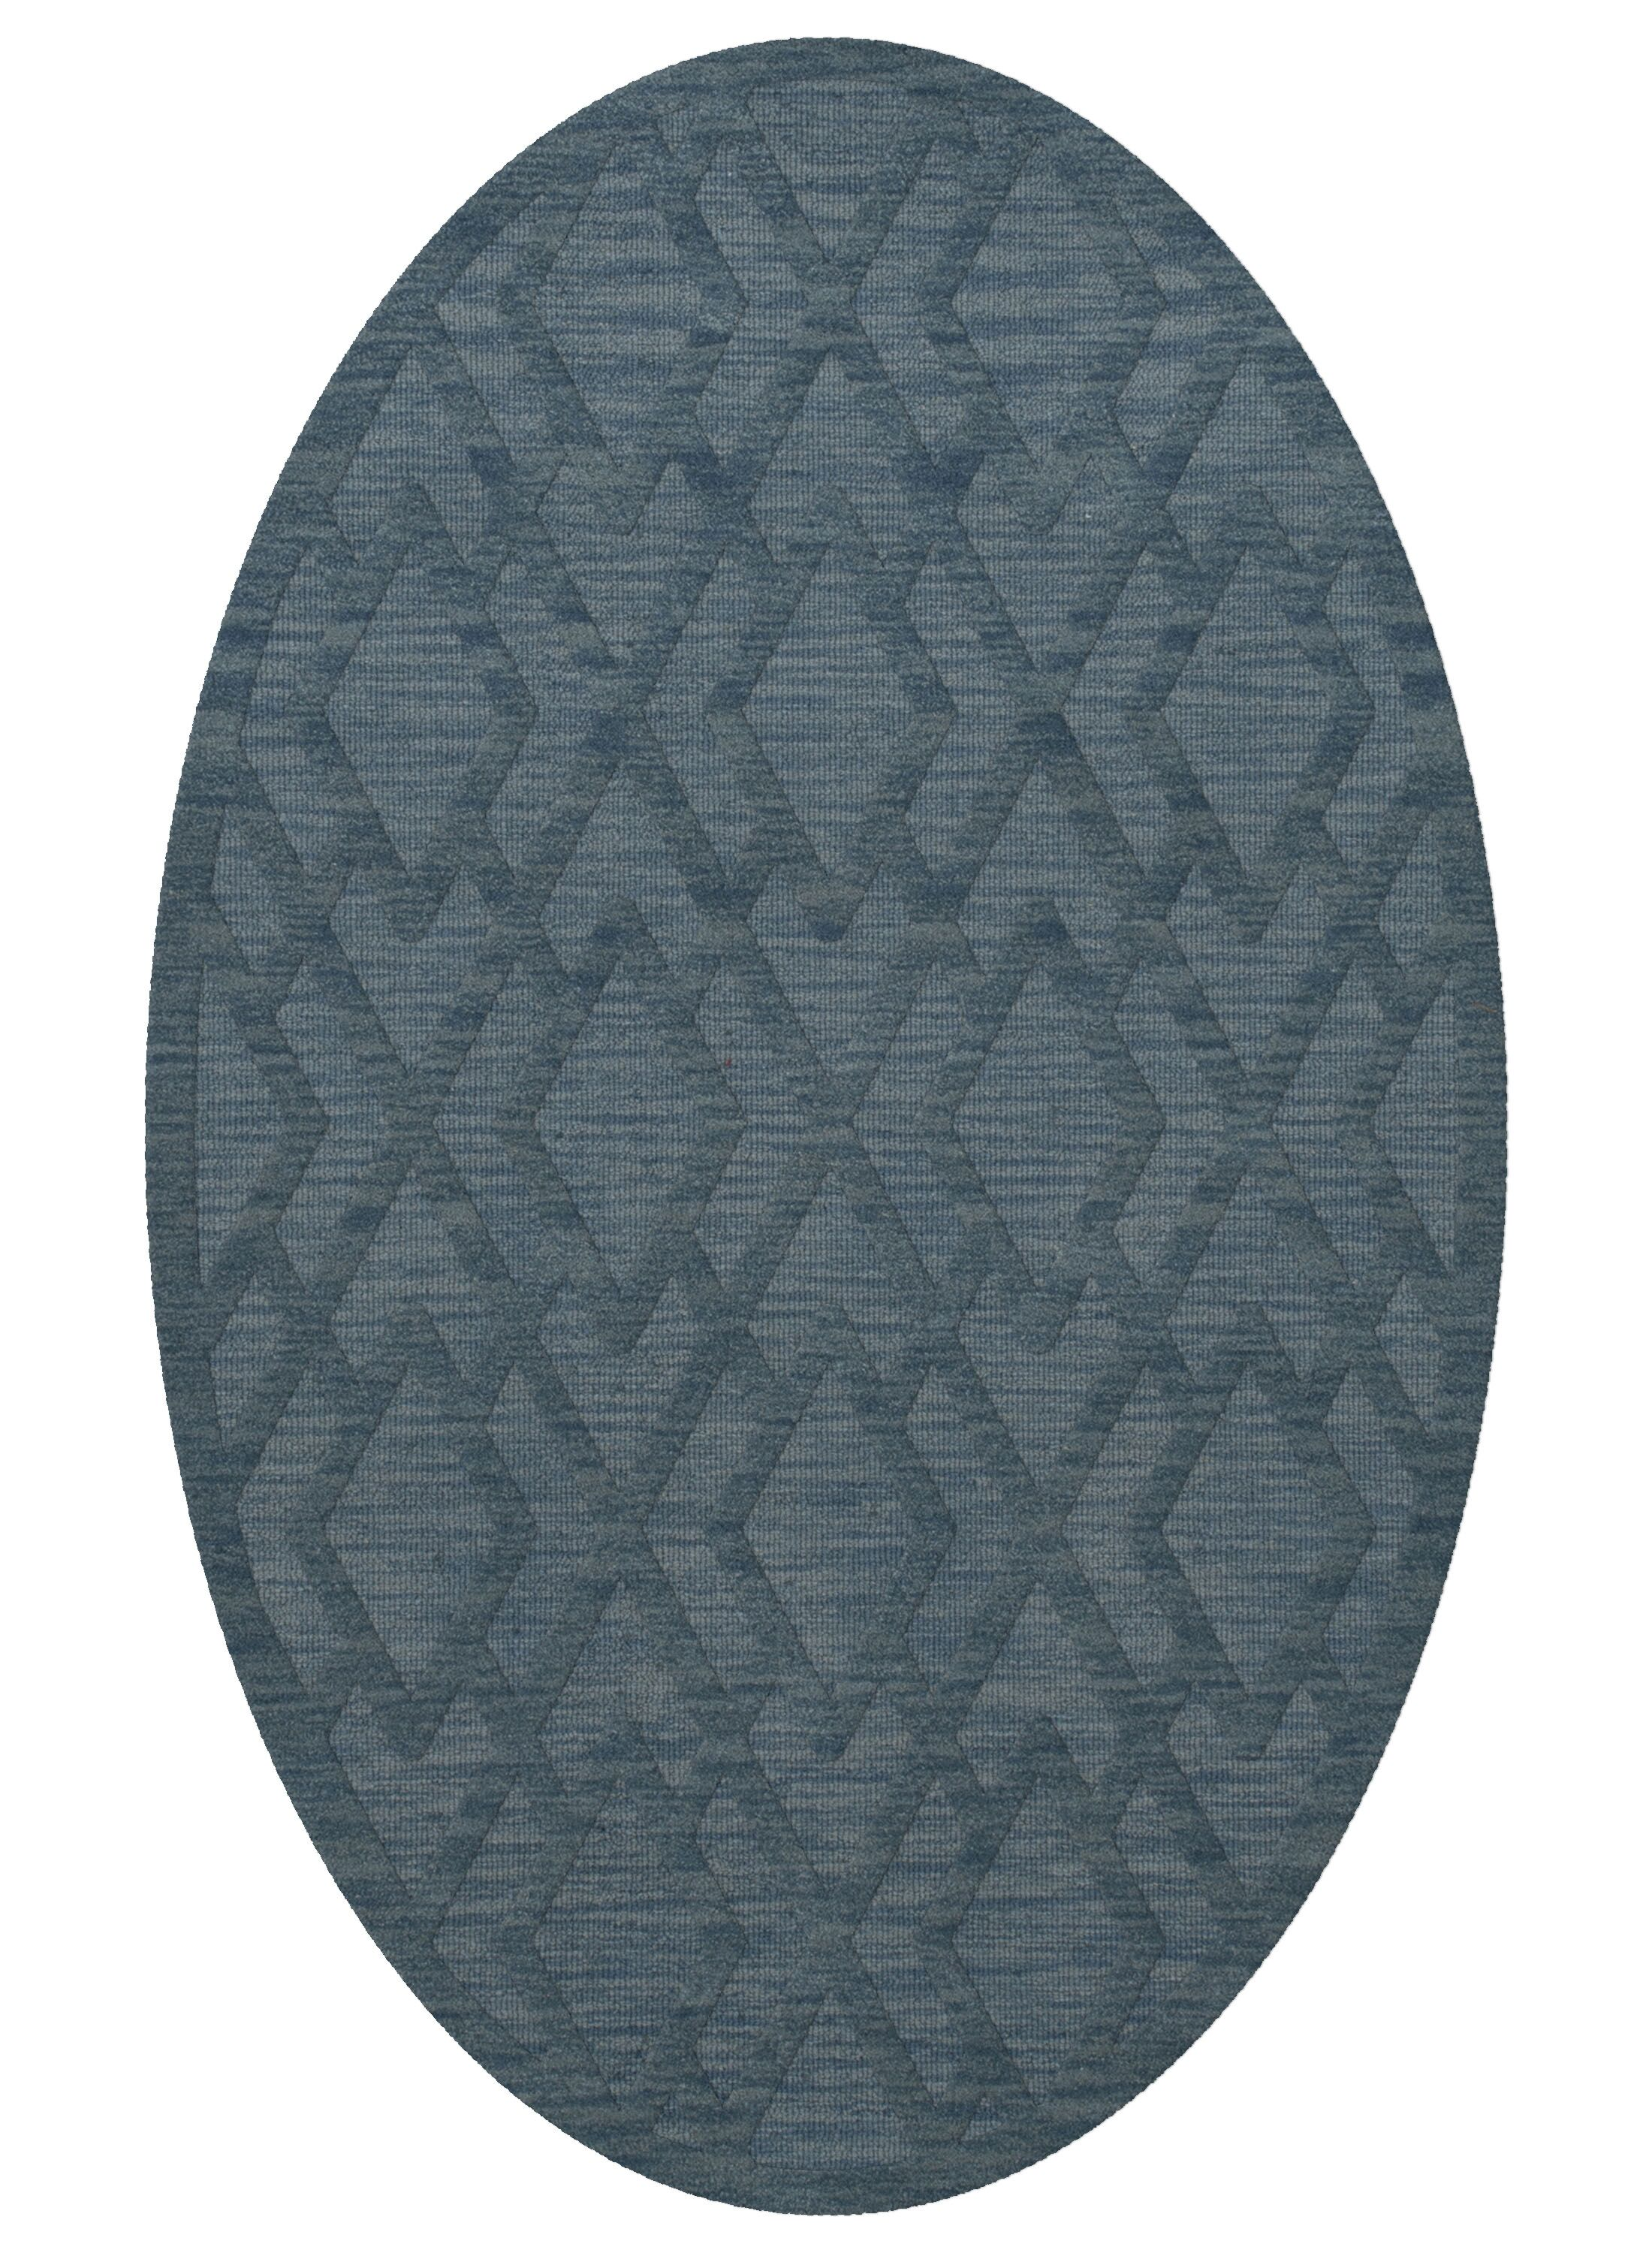 Dover Tufted Wool Sky Area Rug Rug Size: Oval 5' x 8'